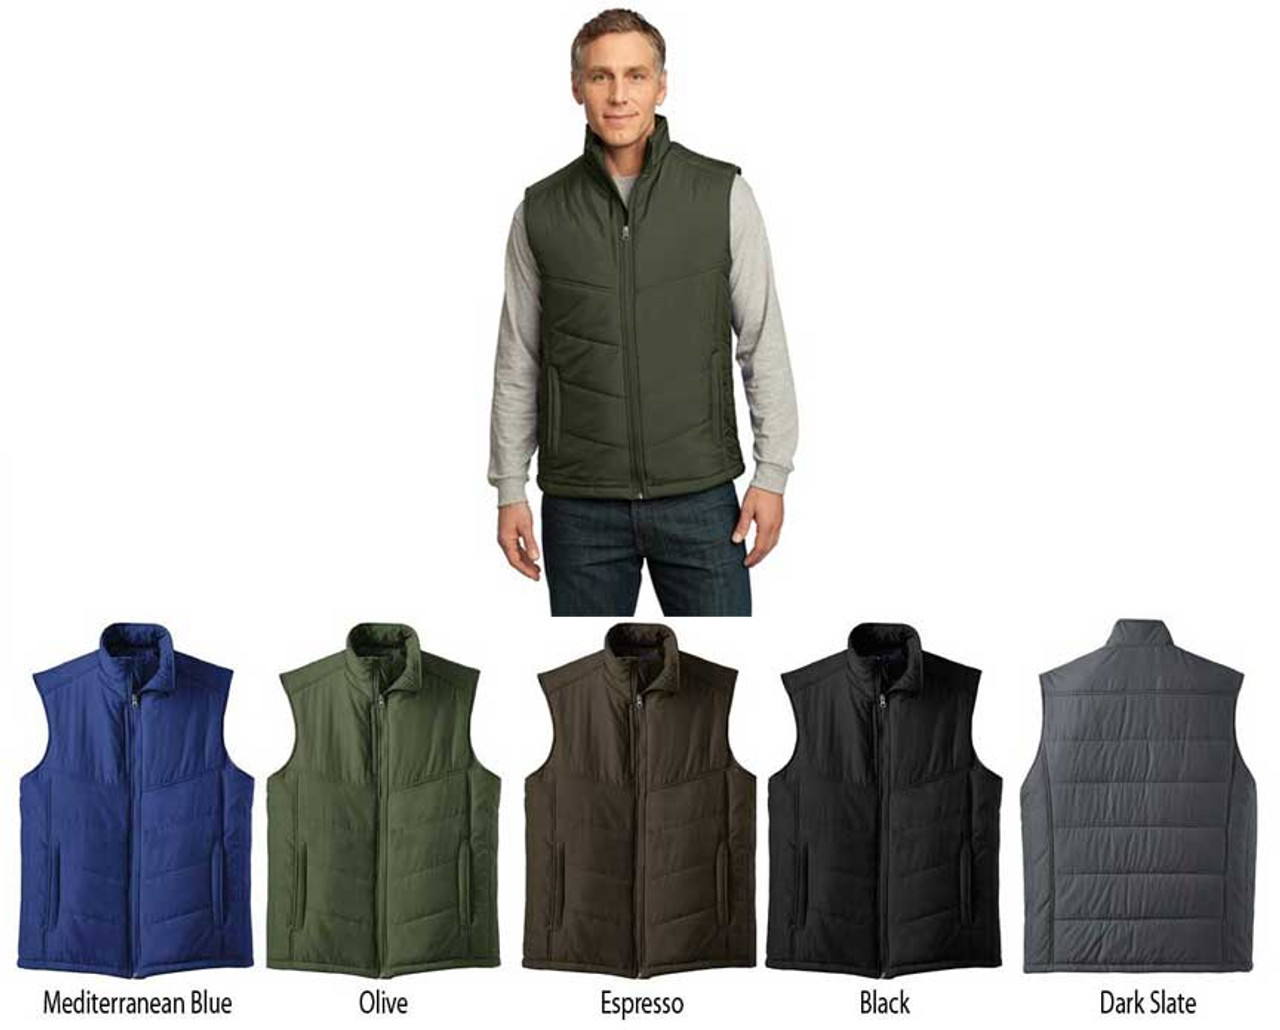 This uniform vest is great for outdoors staff!